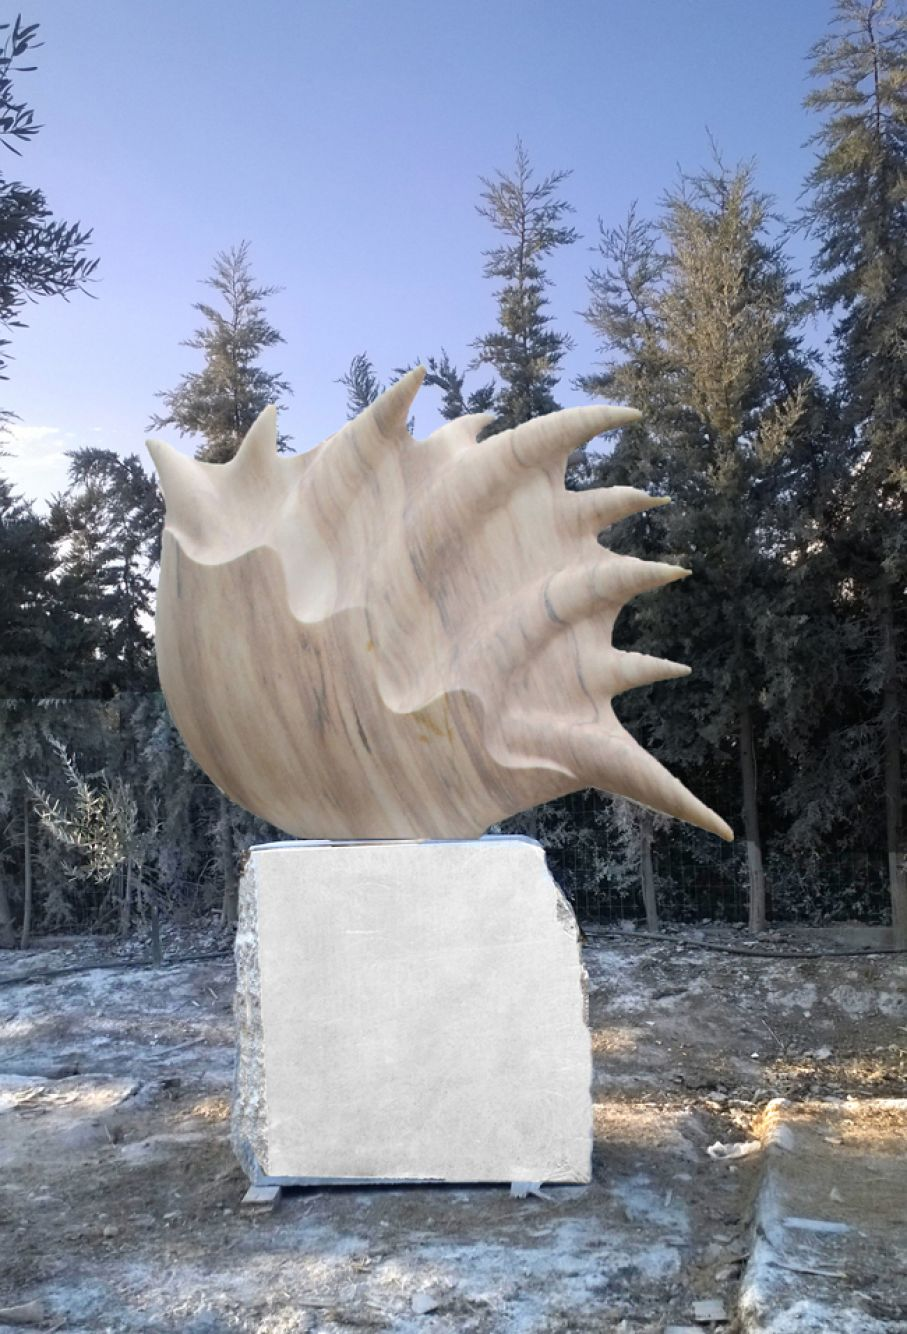 "Original marble sculpture of  Albena Mihaylova, completed on August 2014, within Myrό Antiques House premises, in Souroti, Thessaloniki, GREECE, as part of the Greek Marble Initiative, bearing the title ""Flame"". Dimensions: 195 X 87 X 40 (with its base)."